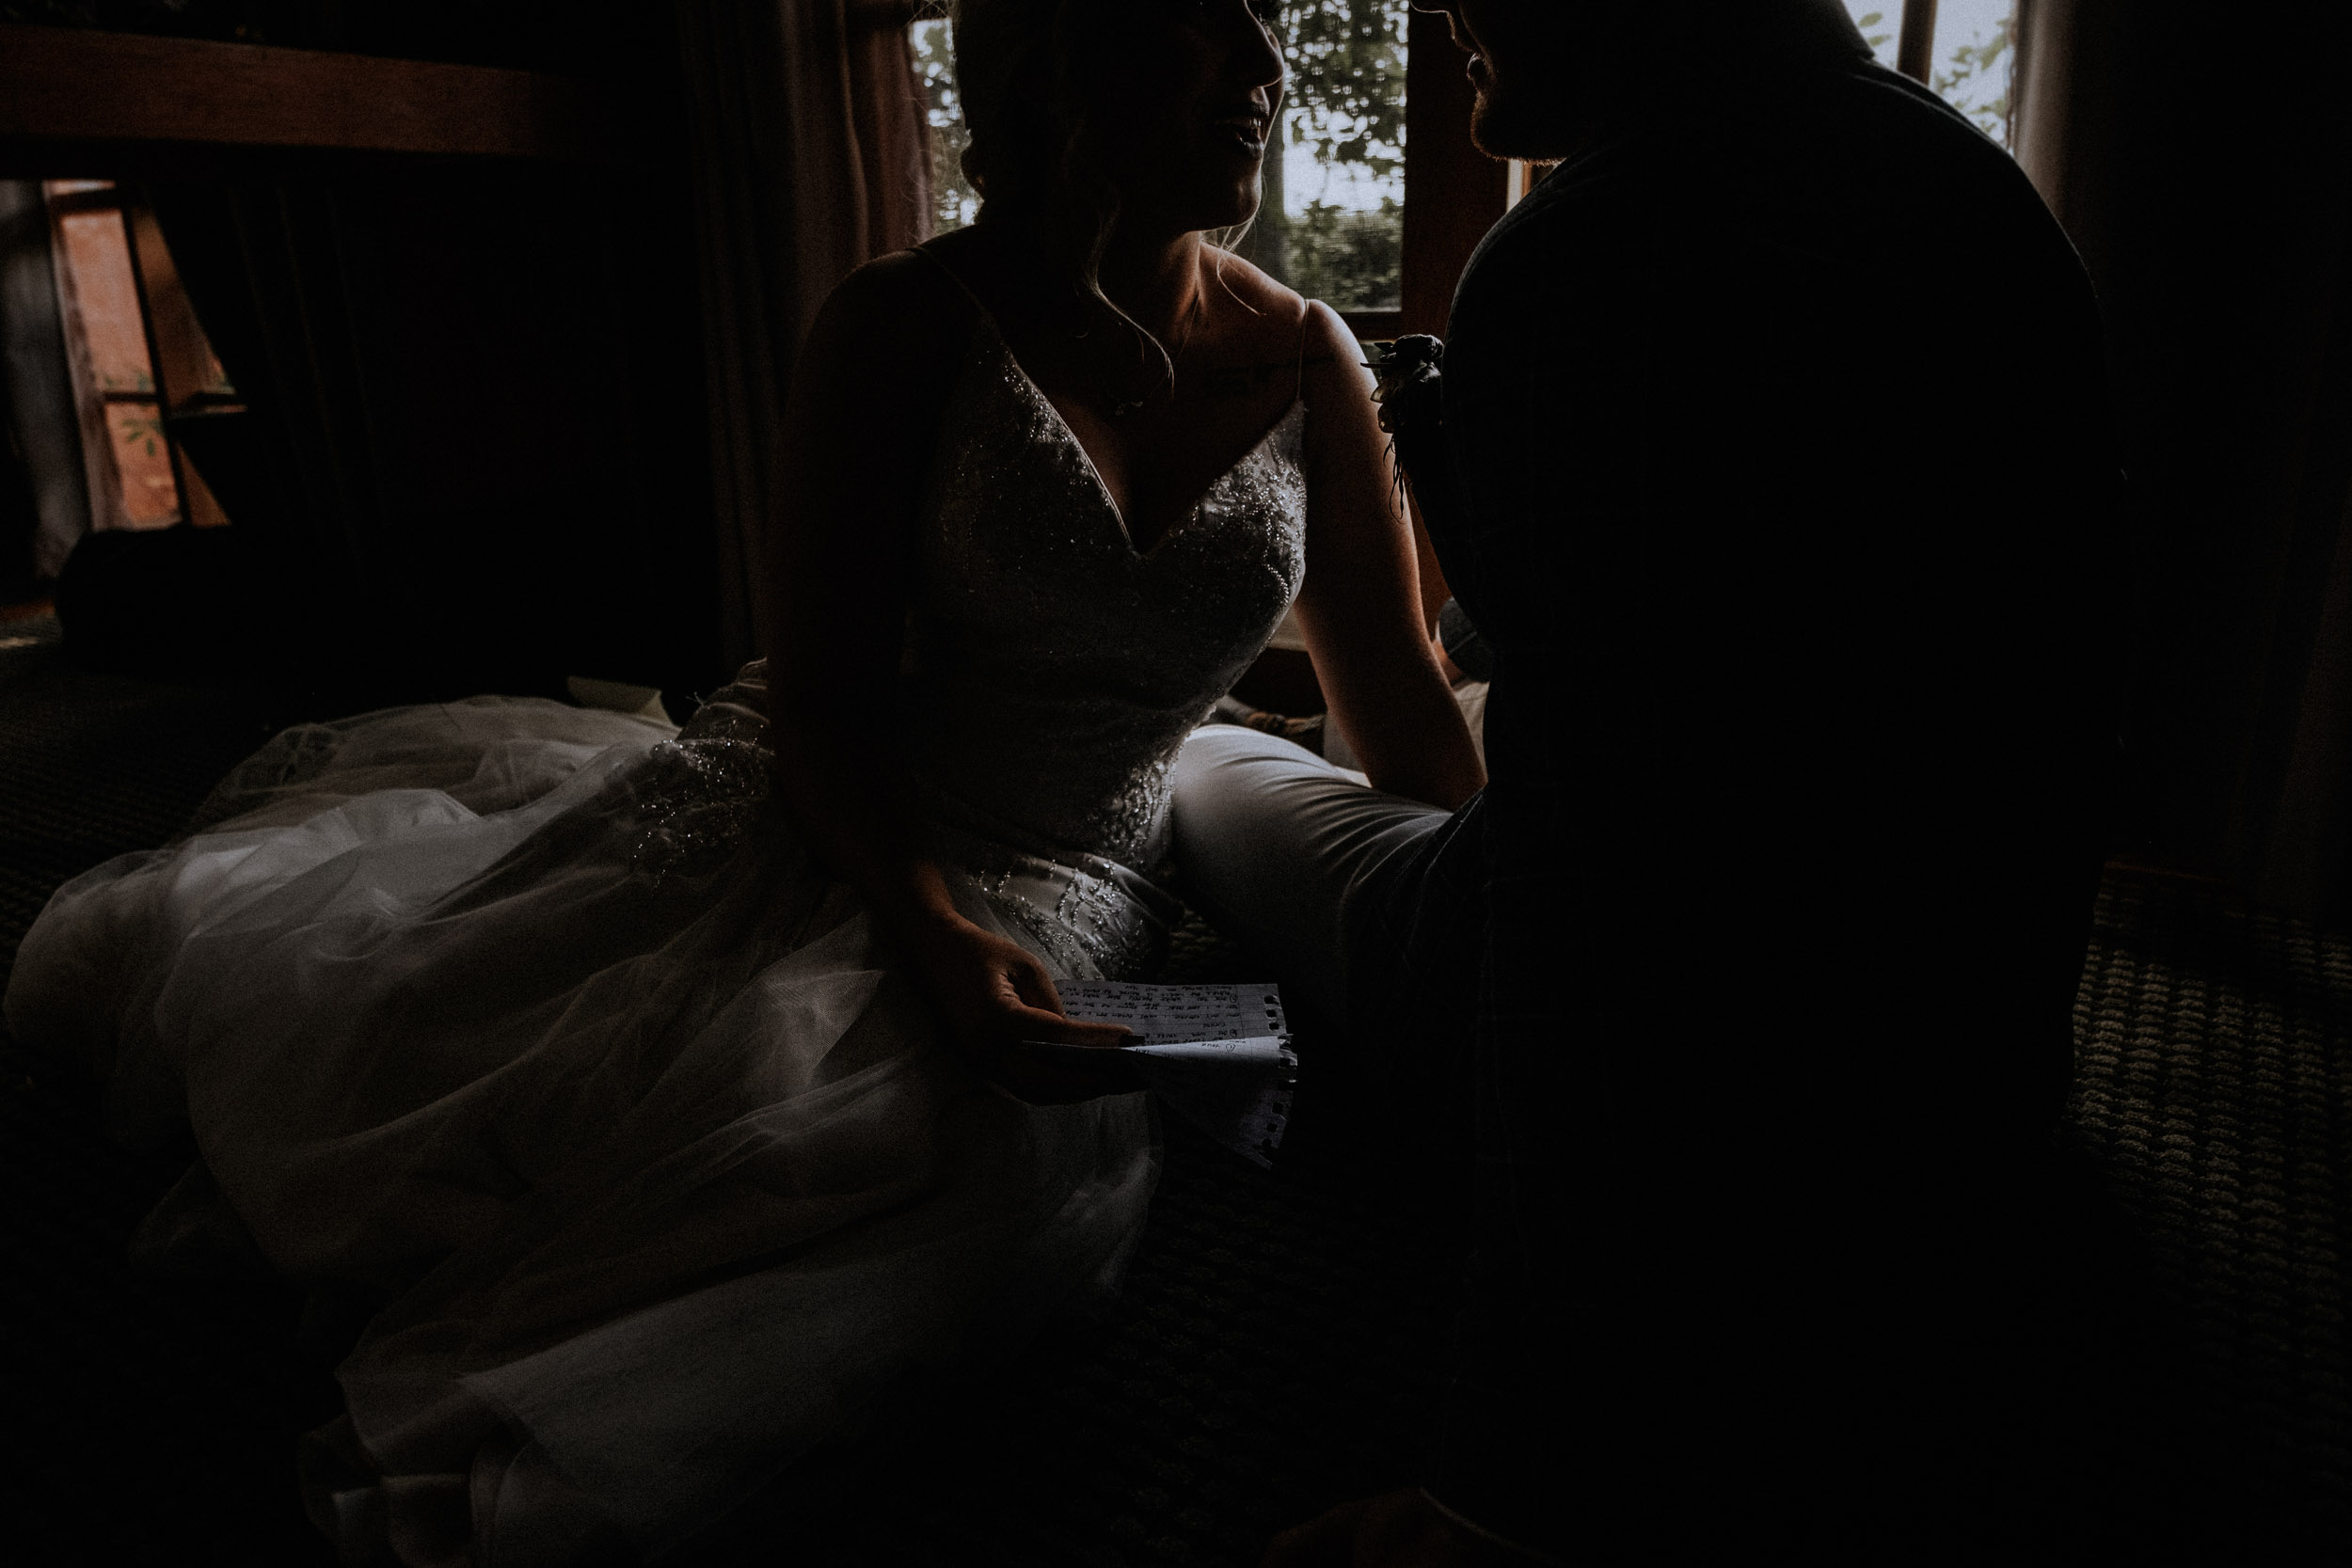 A&A_elopement wedding photography_kings & thieves_blog (23 of 40).jpg